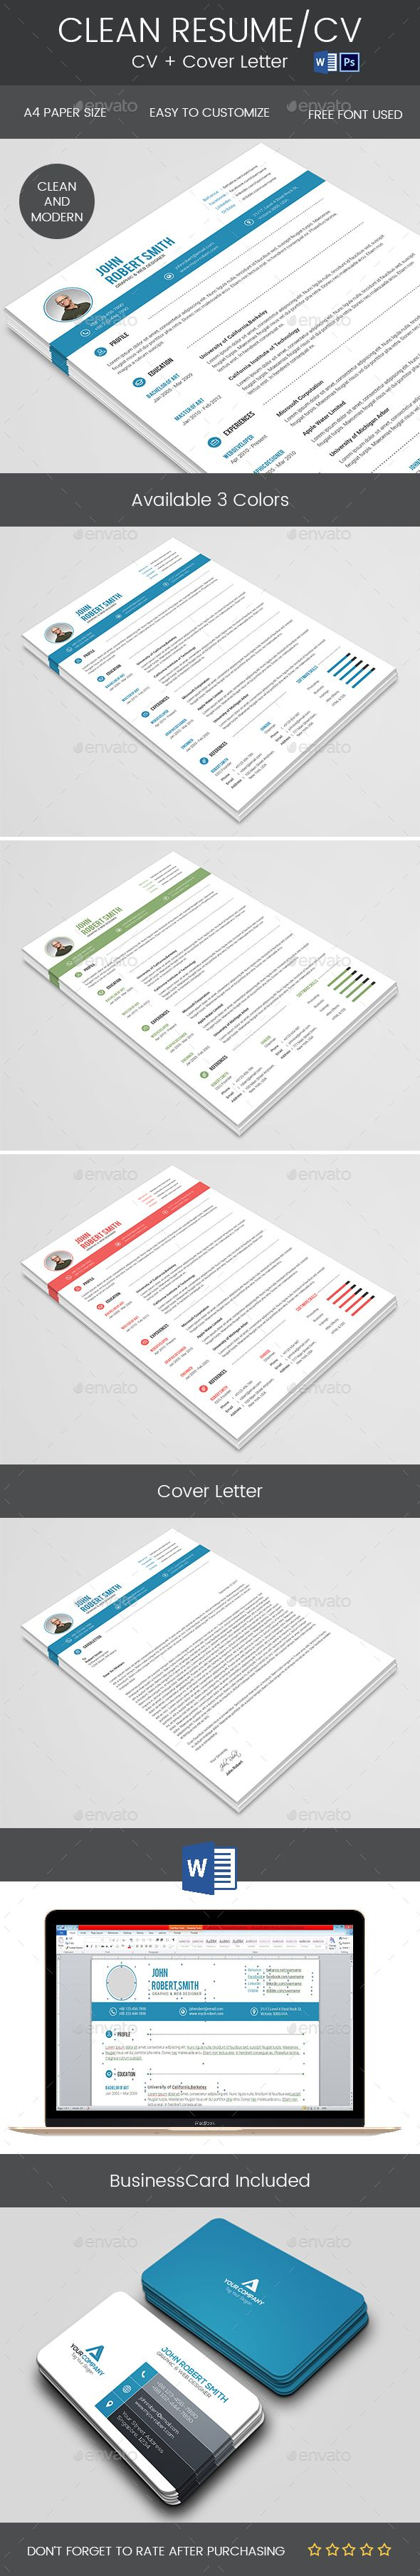 Clean Resume u0026 Cover Letter 1552 best